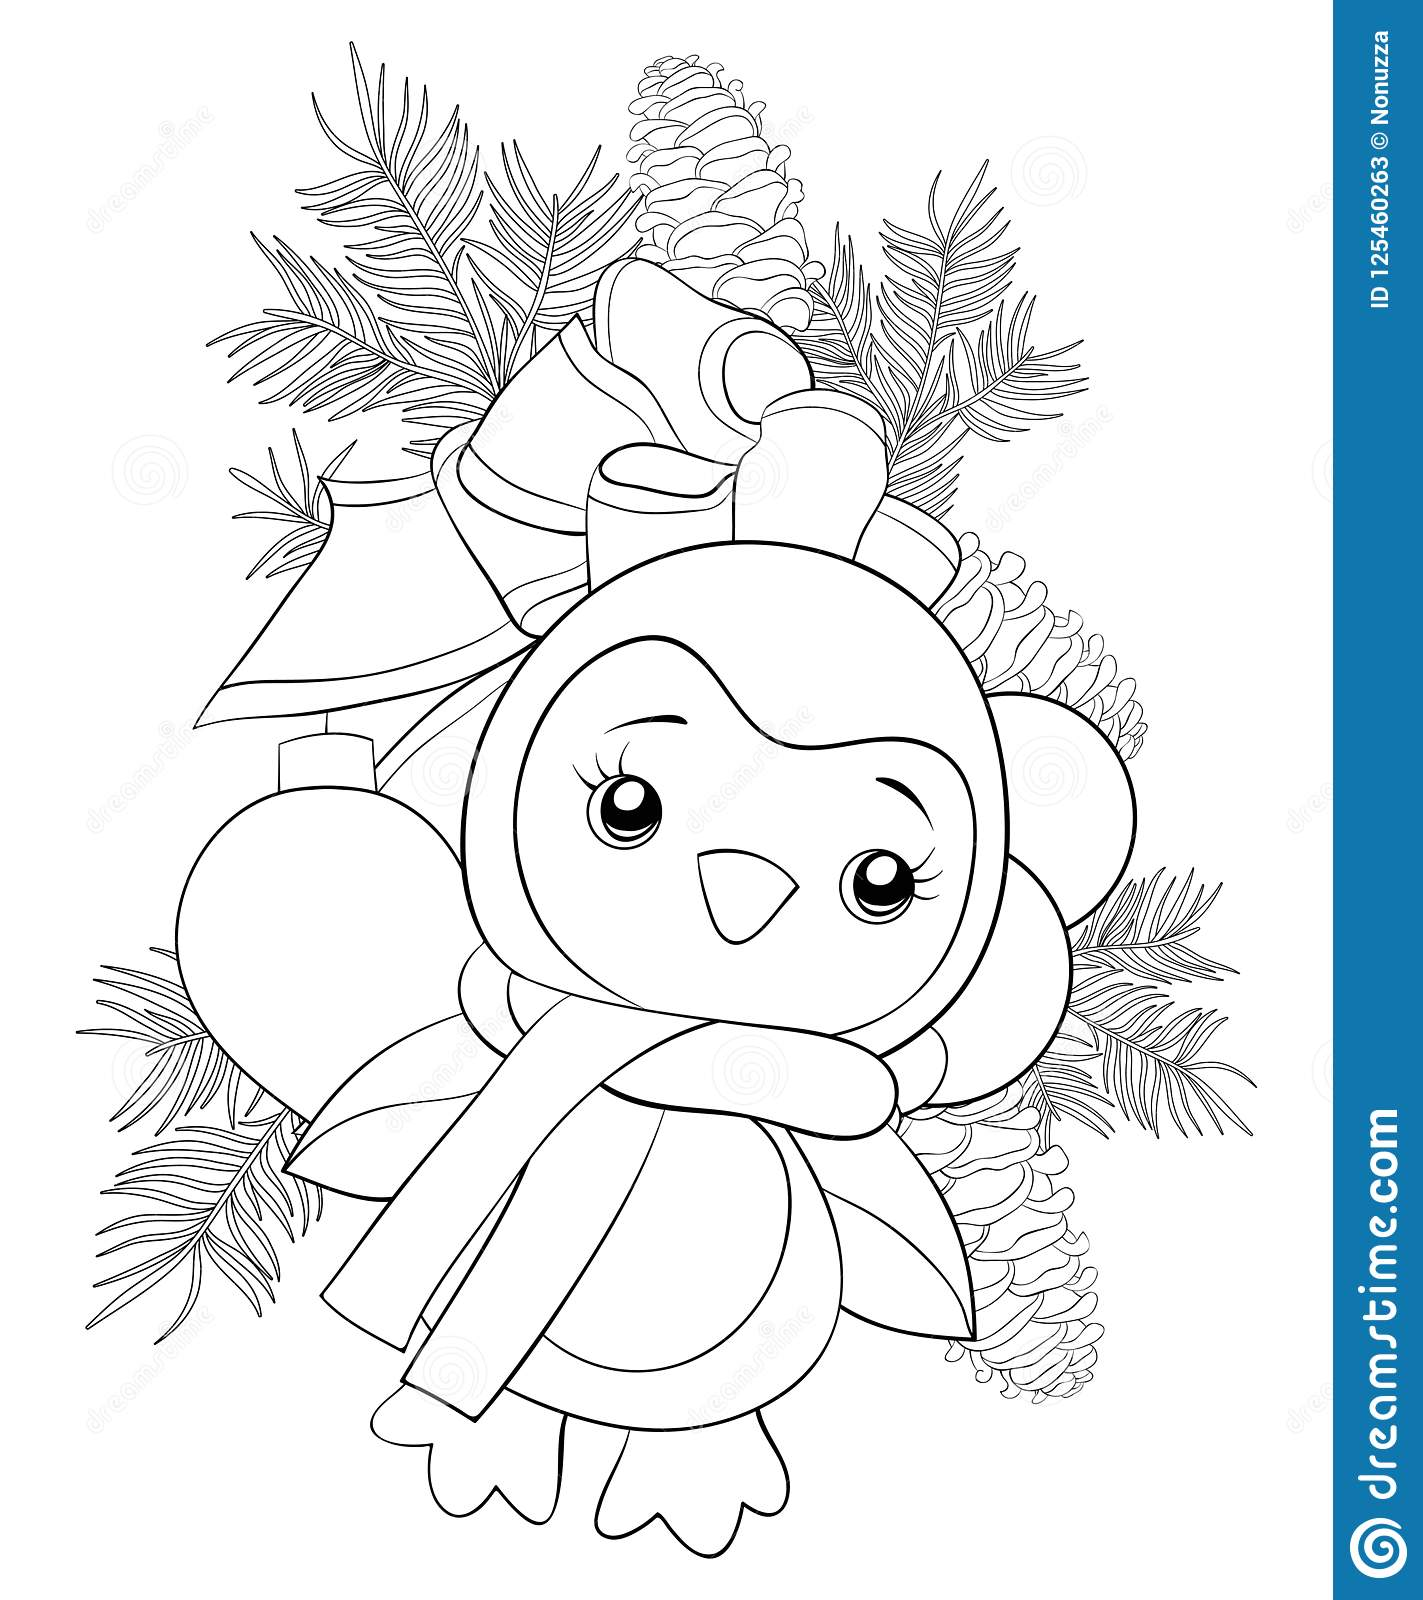 A Coloring Book,page A Cute Penguin On The Fir Tree Brunch ...